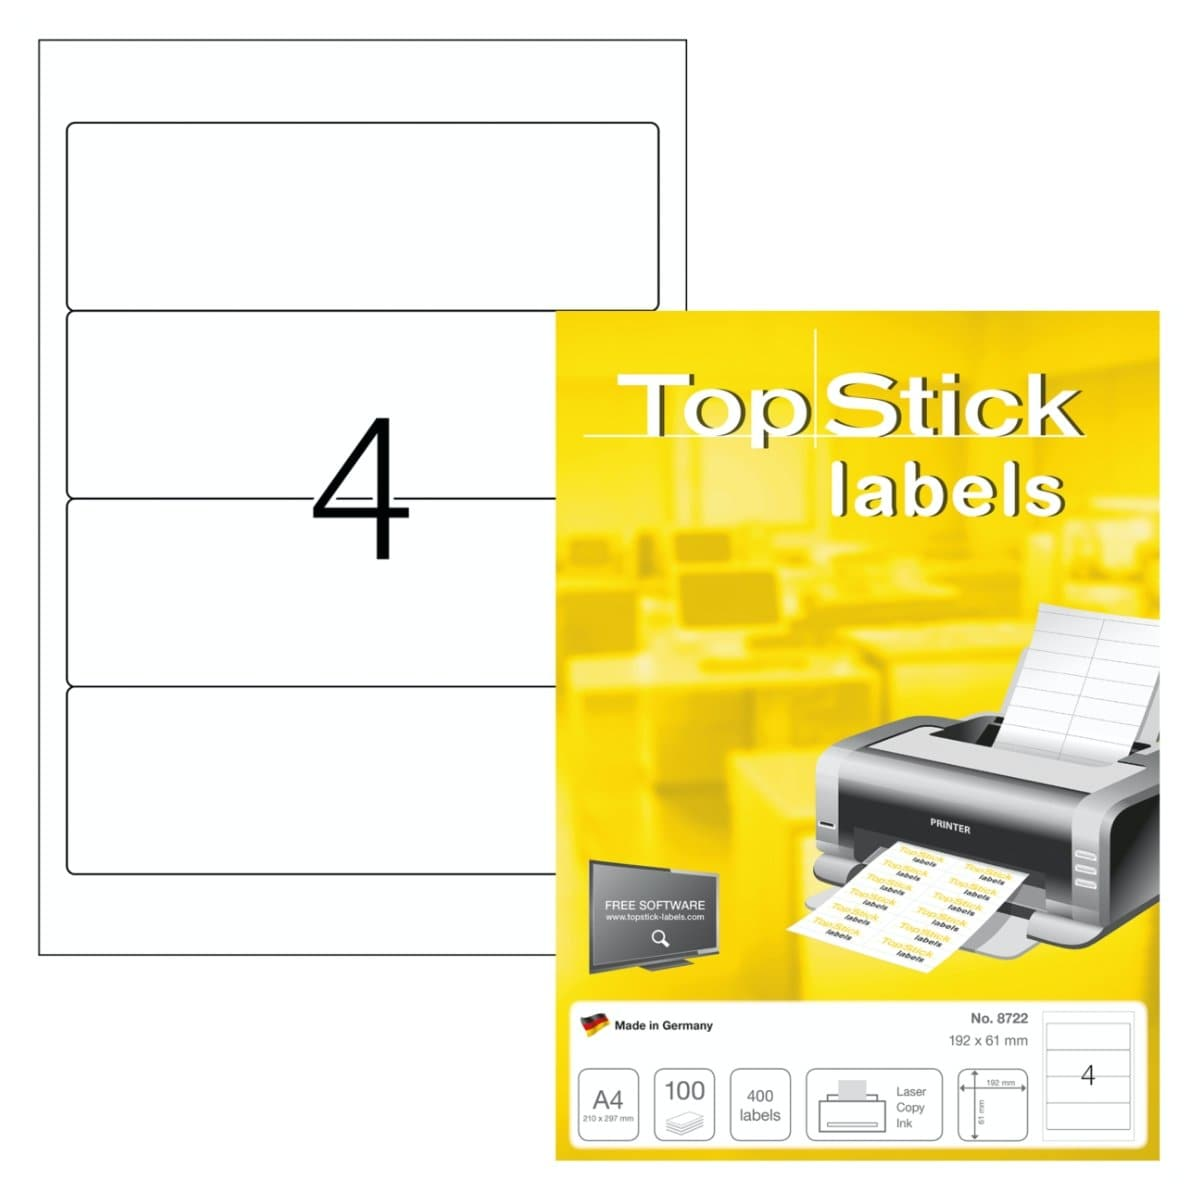 TopStick labels Box File Broad 4 labels/sheet, round corners, 192 x 61 mm, 100sheets/pack, White